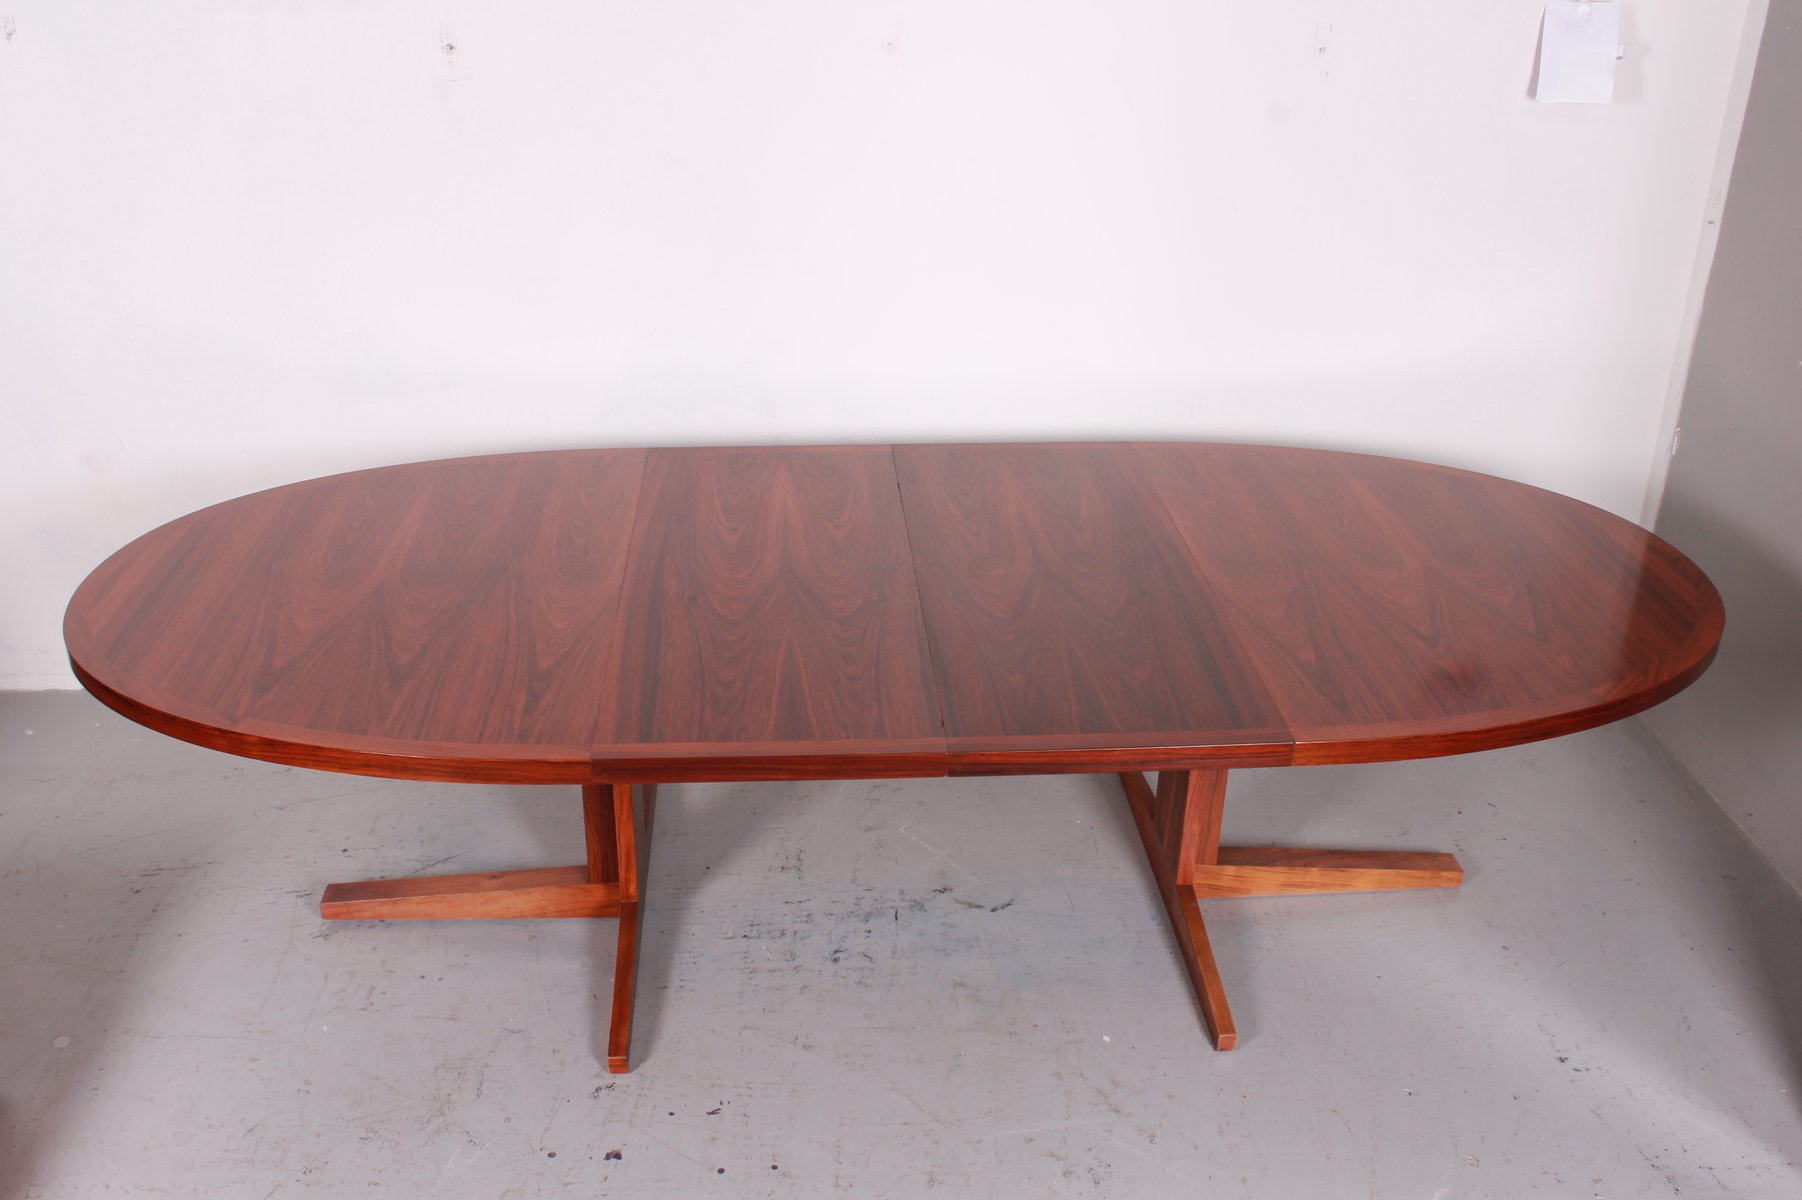 Vintage extensible dining table from dyrlund for sale at for Table extensible 3 suisses